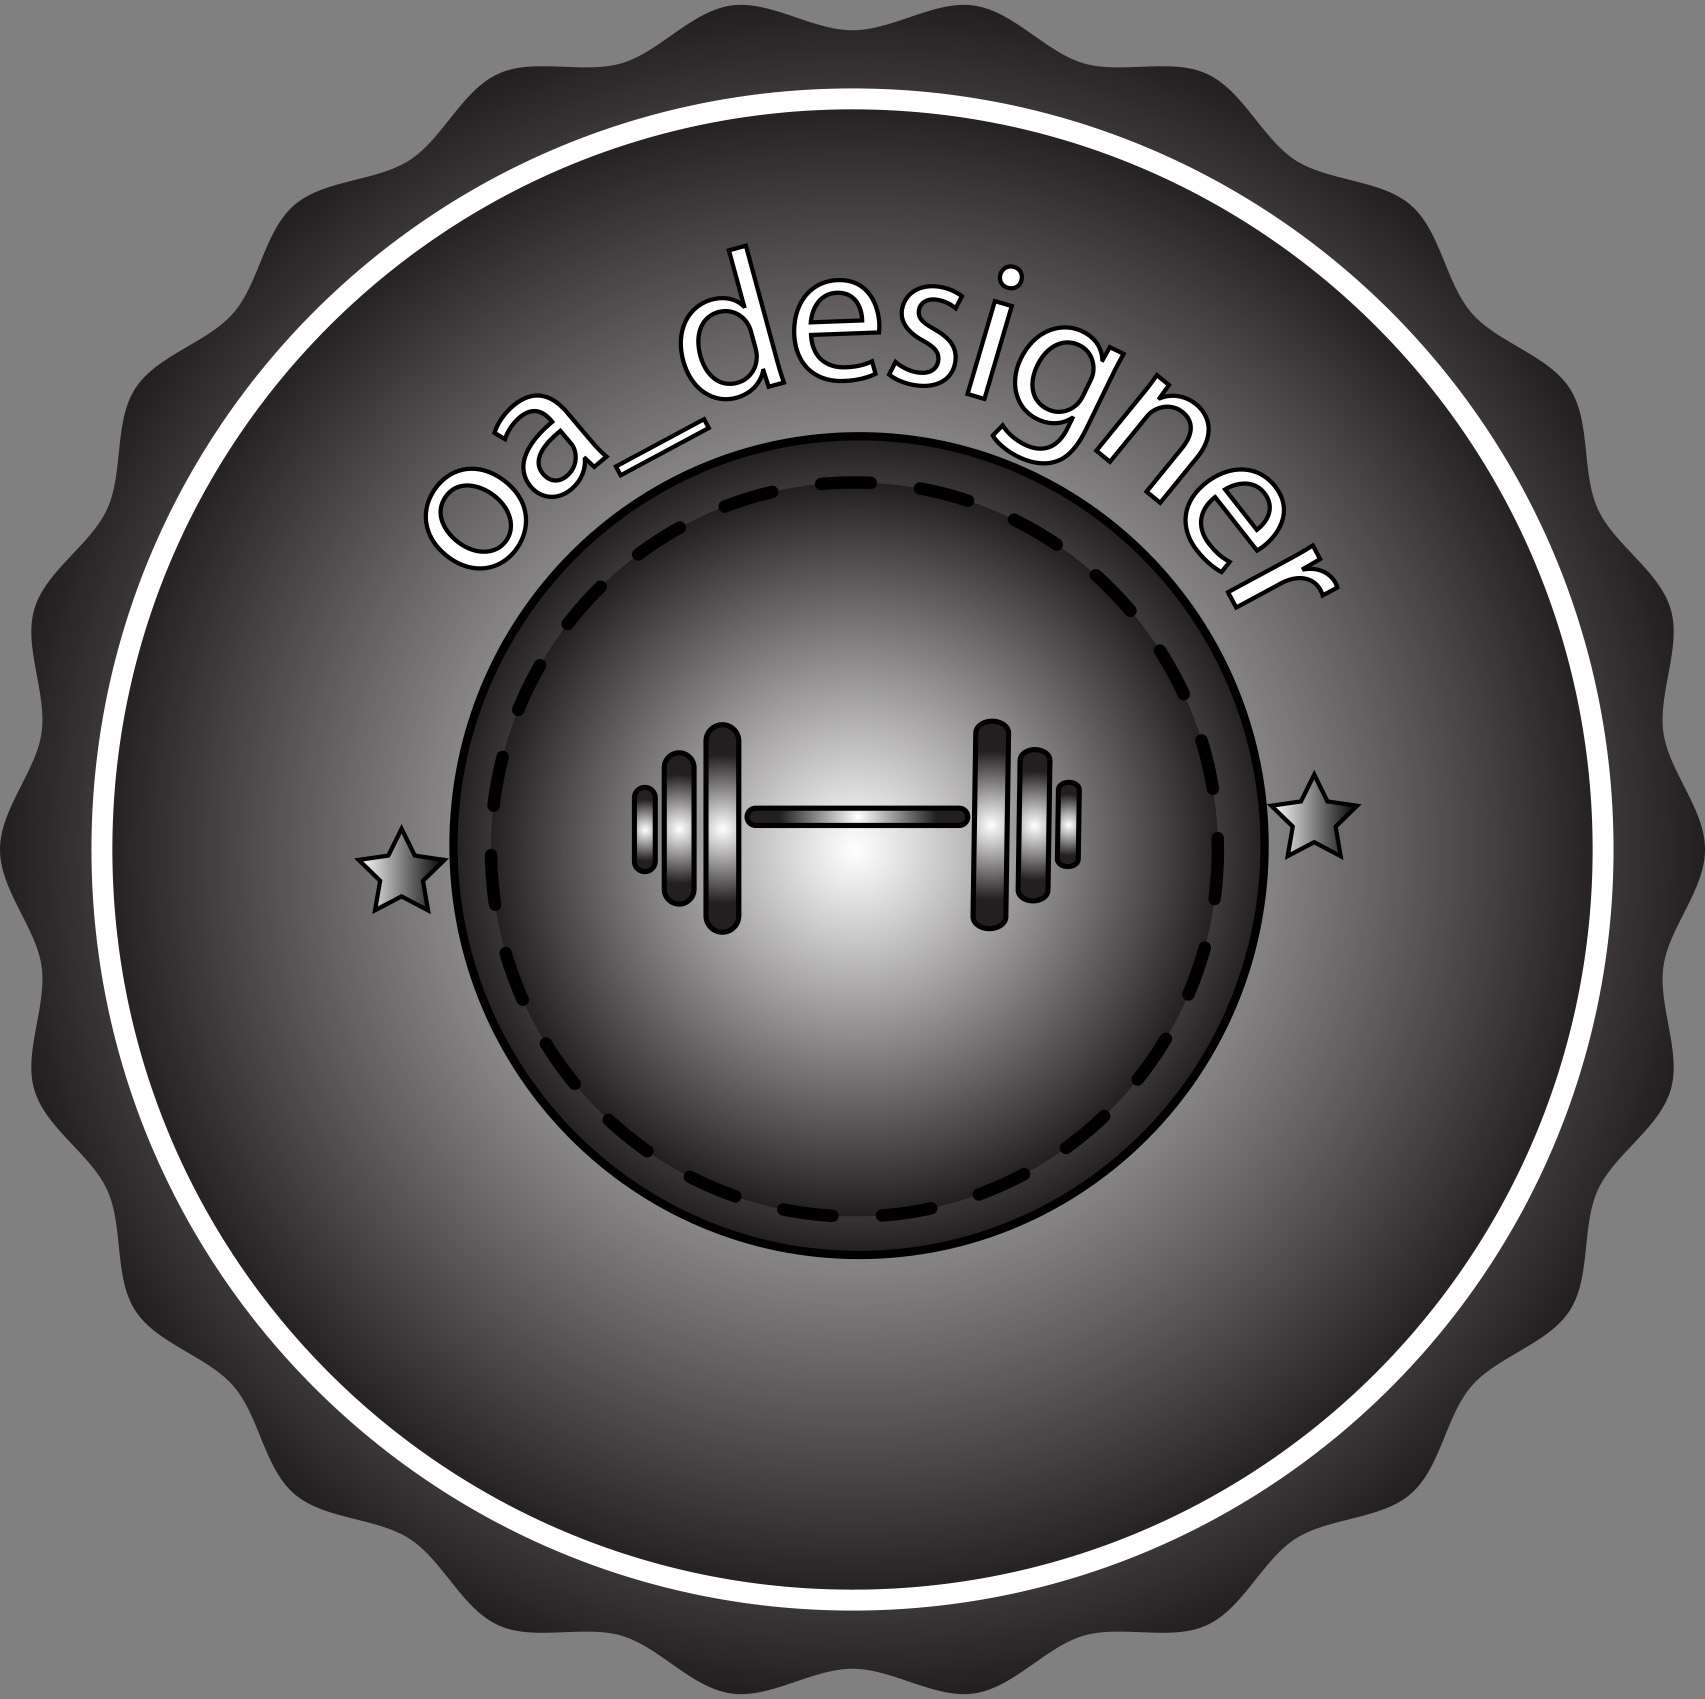 design an eye catching logo with in 24 hours